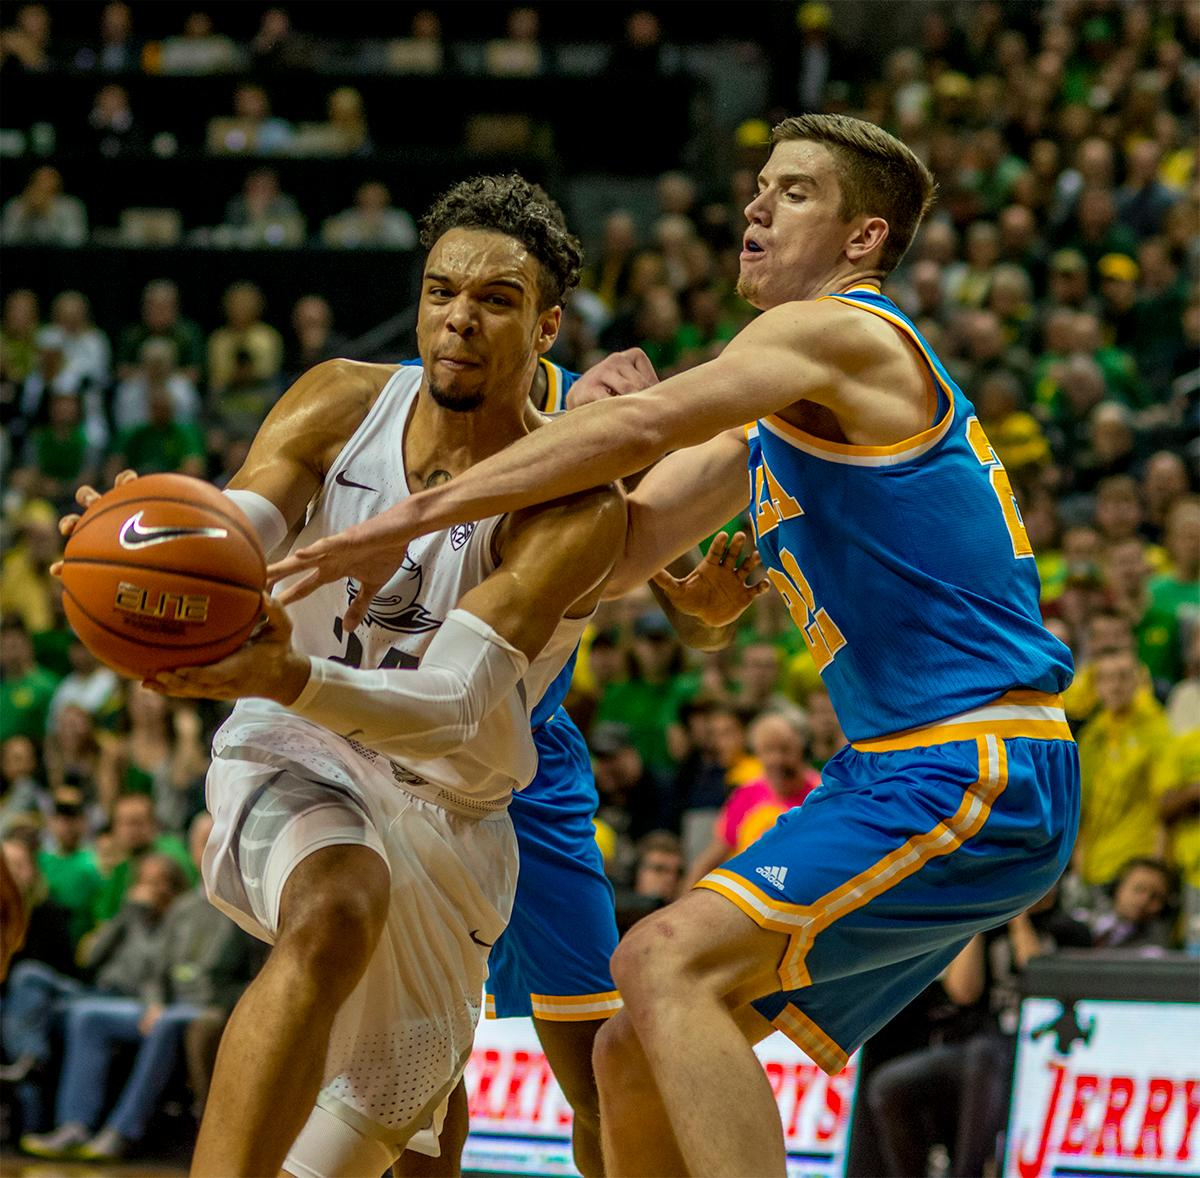 The Duck's Dillon Brooks (#24) pushes his way through the Bruins defense on his way to the basket. With two seconds left in the game Dillon Brooks (#24) scored a three pointer to give them the lead, 89-87, over No. 2 UCLA and take the win on Wednesday at Matthew Knight Arena in front of a sold out crowd. Brooks finished with 23 points, Payton Pritchard (#3) added another 15 points and Jordan Bell (#1) added 13. The Ducks are now 12-2 and 1-0 in the Pac-12. Photo by August Frank, Oregon News Lab